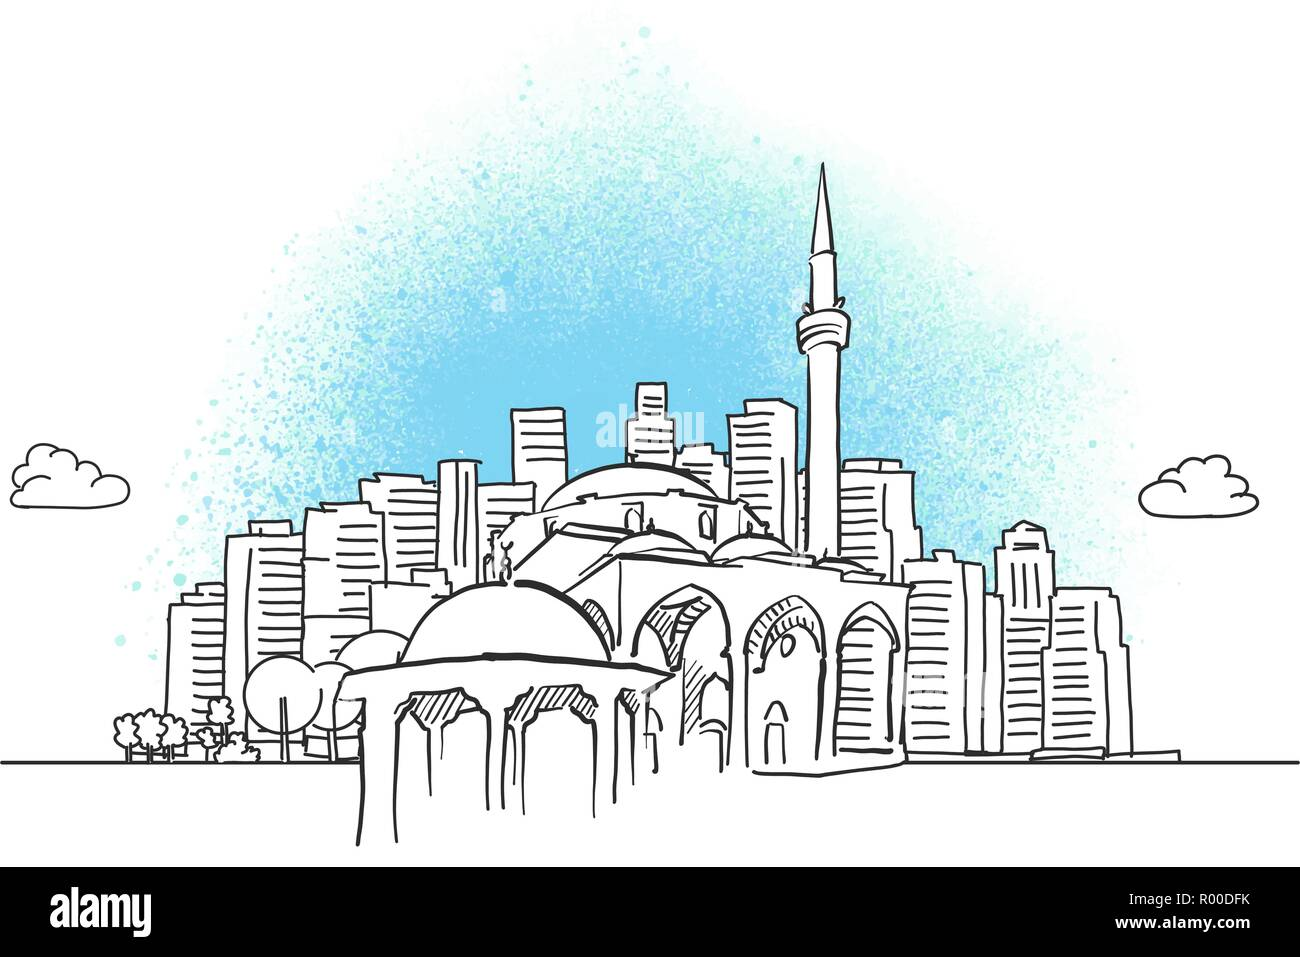 City skyline with historic mosque. Hand drawn vector illustration. - Stock Vector